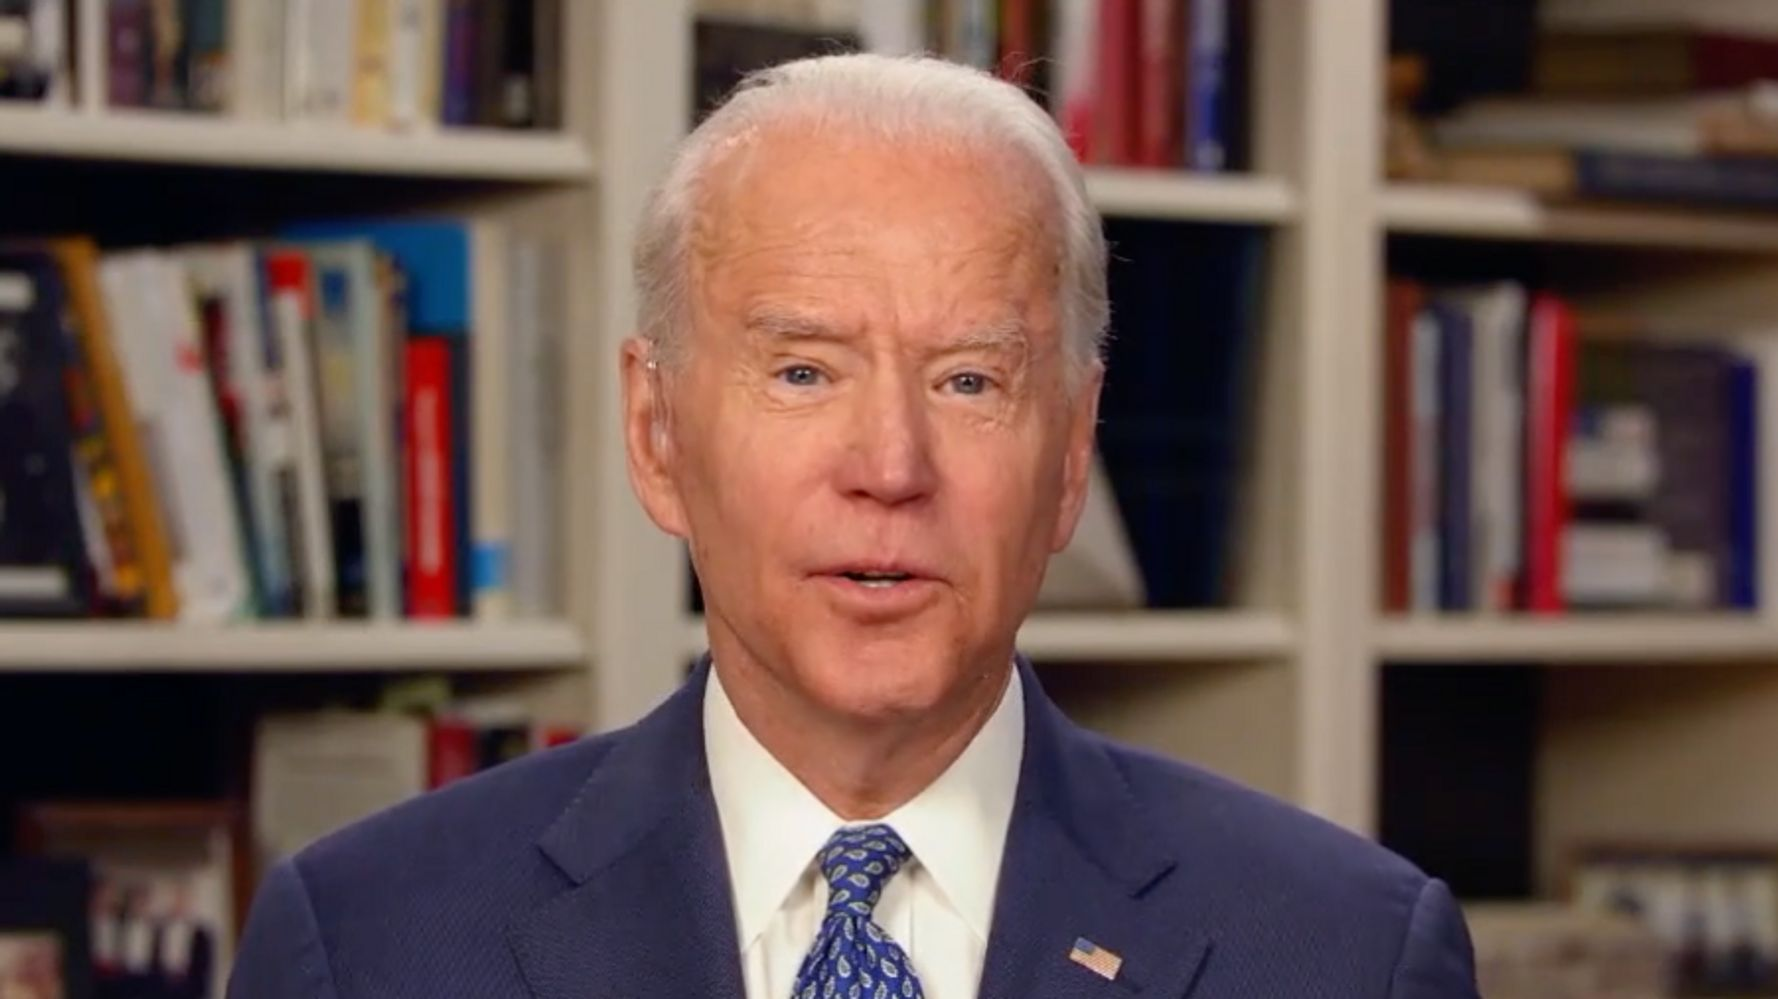 Biden Says 'Virtual' Democratic National Convention May Be Necessary